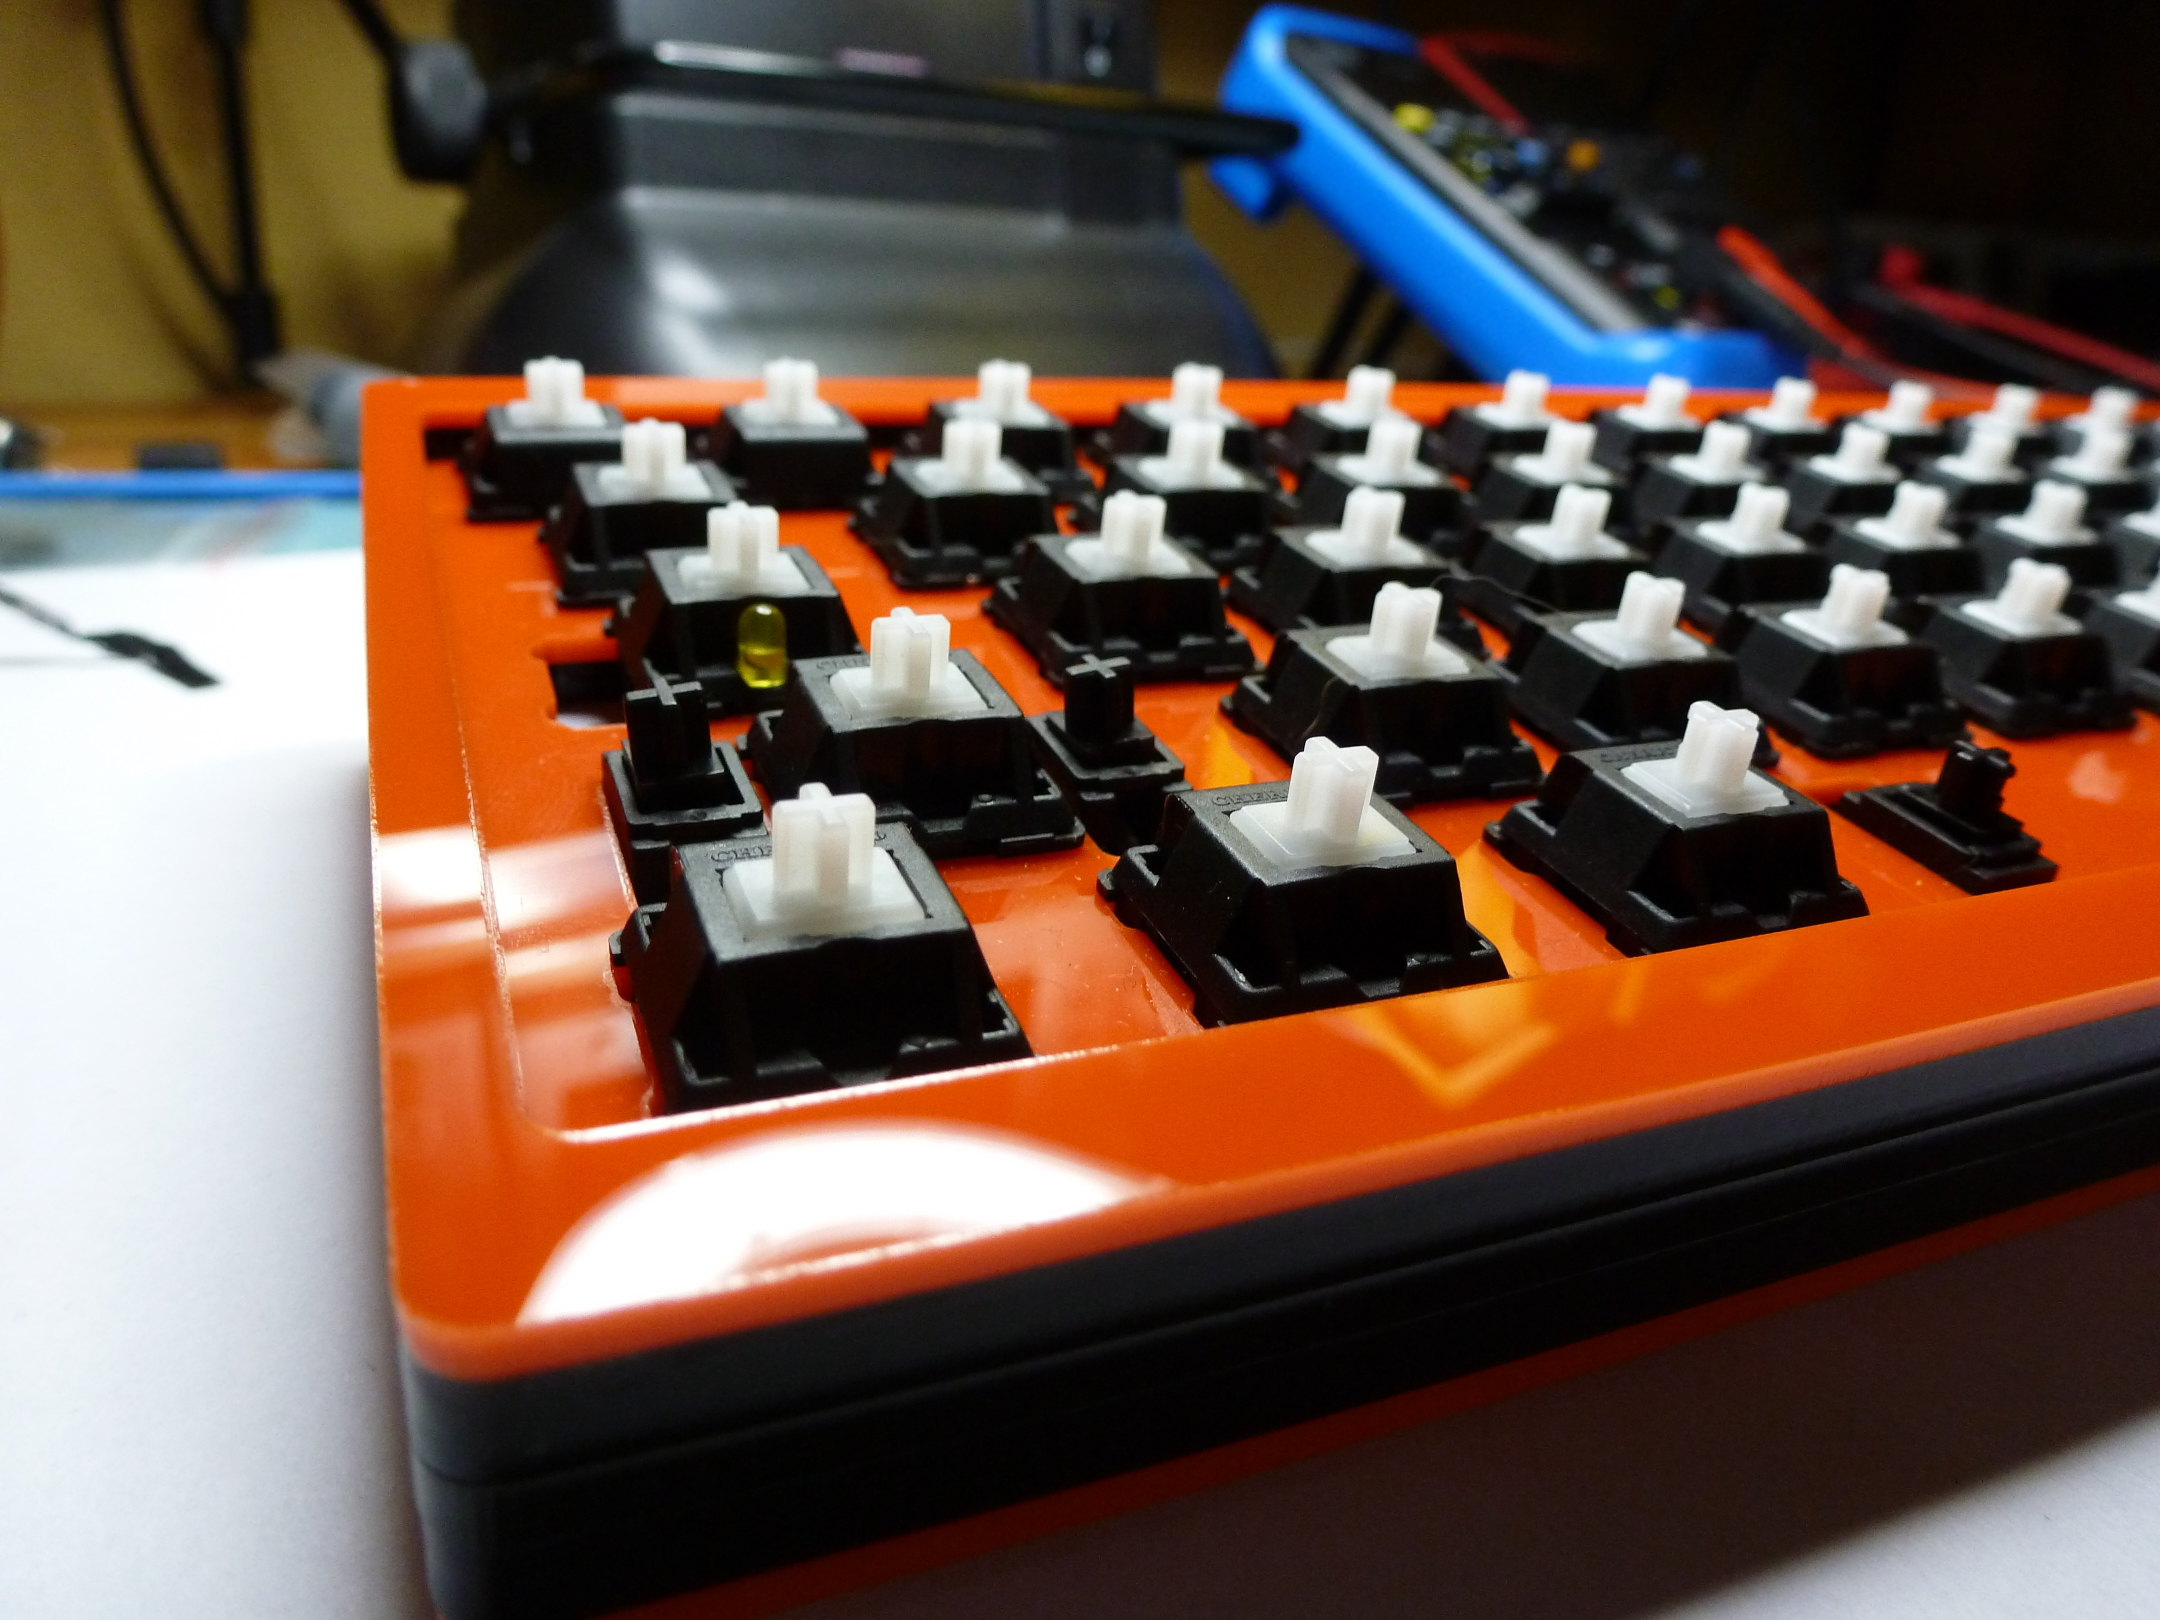 GH60 programmable keyboard | komar's techblog